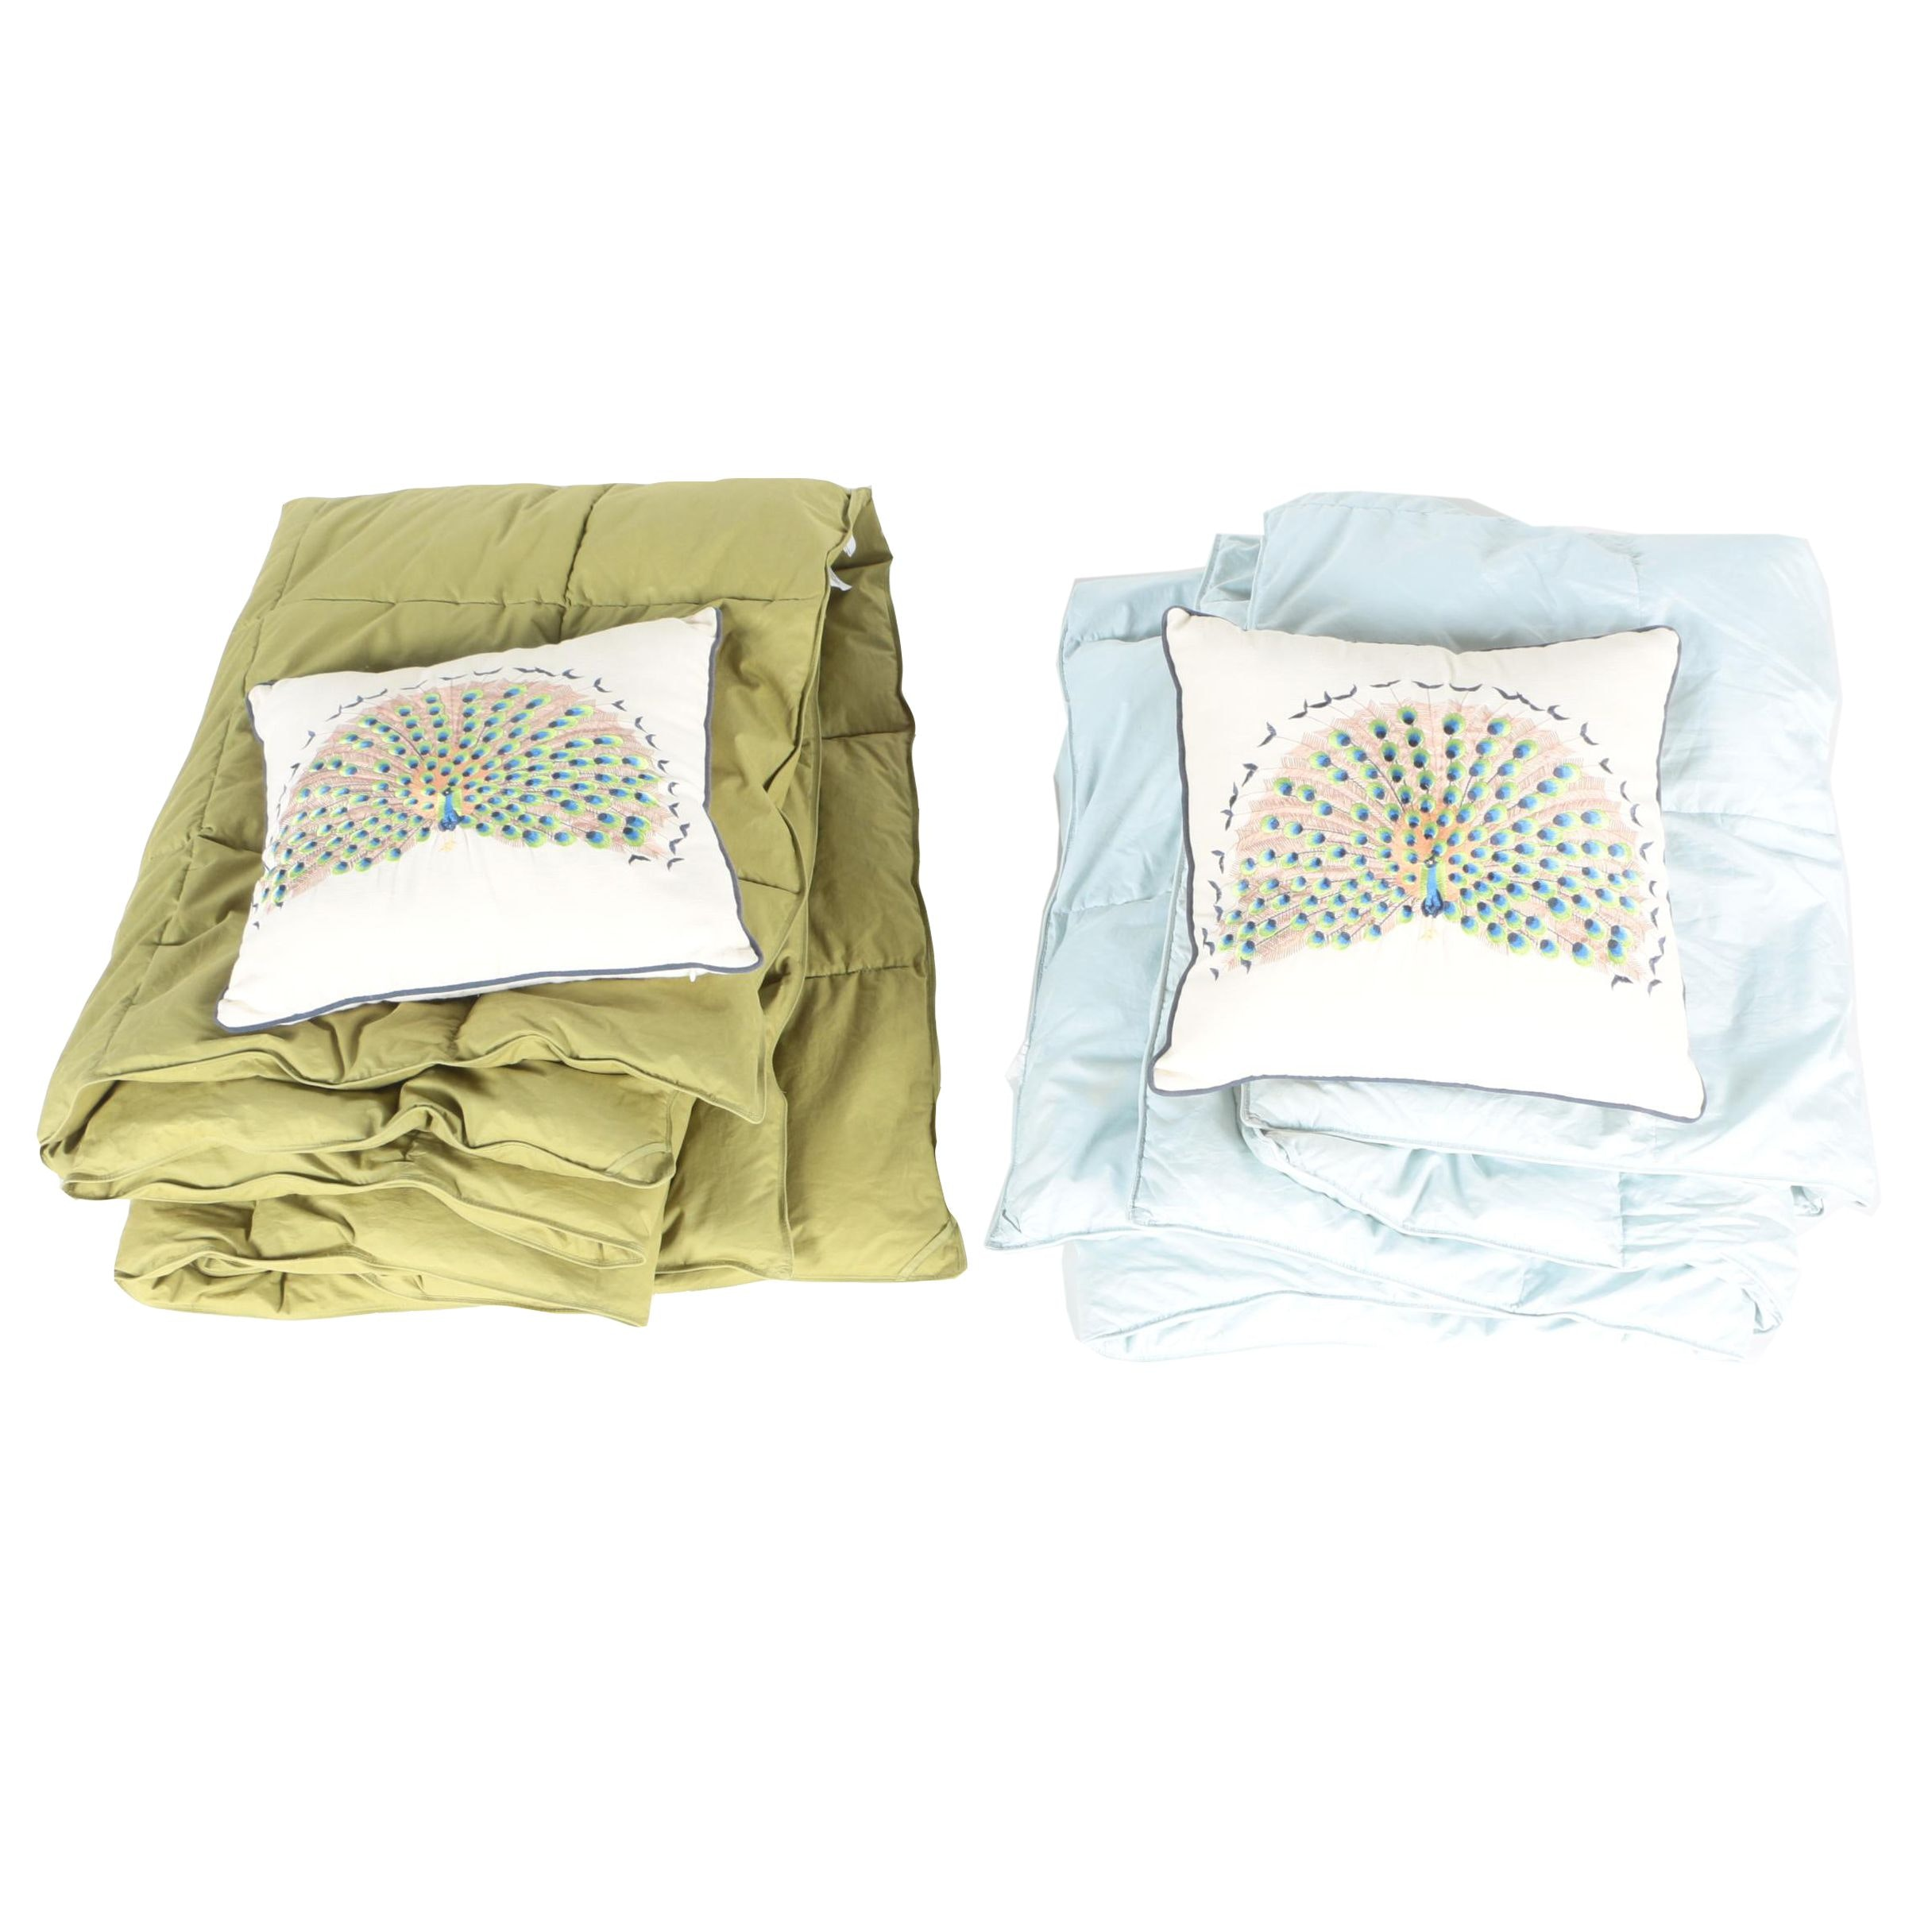 Embroidered Peacock Pillows and Quilted Blankets